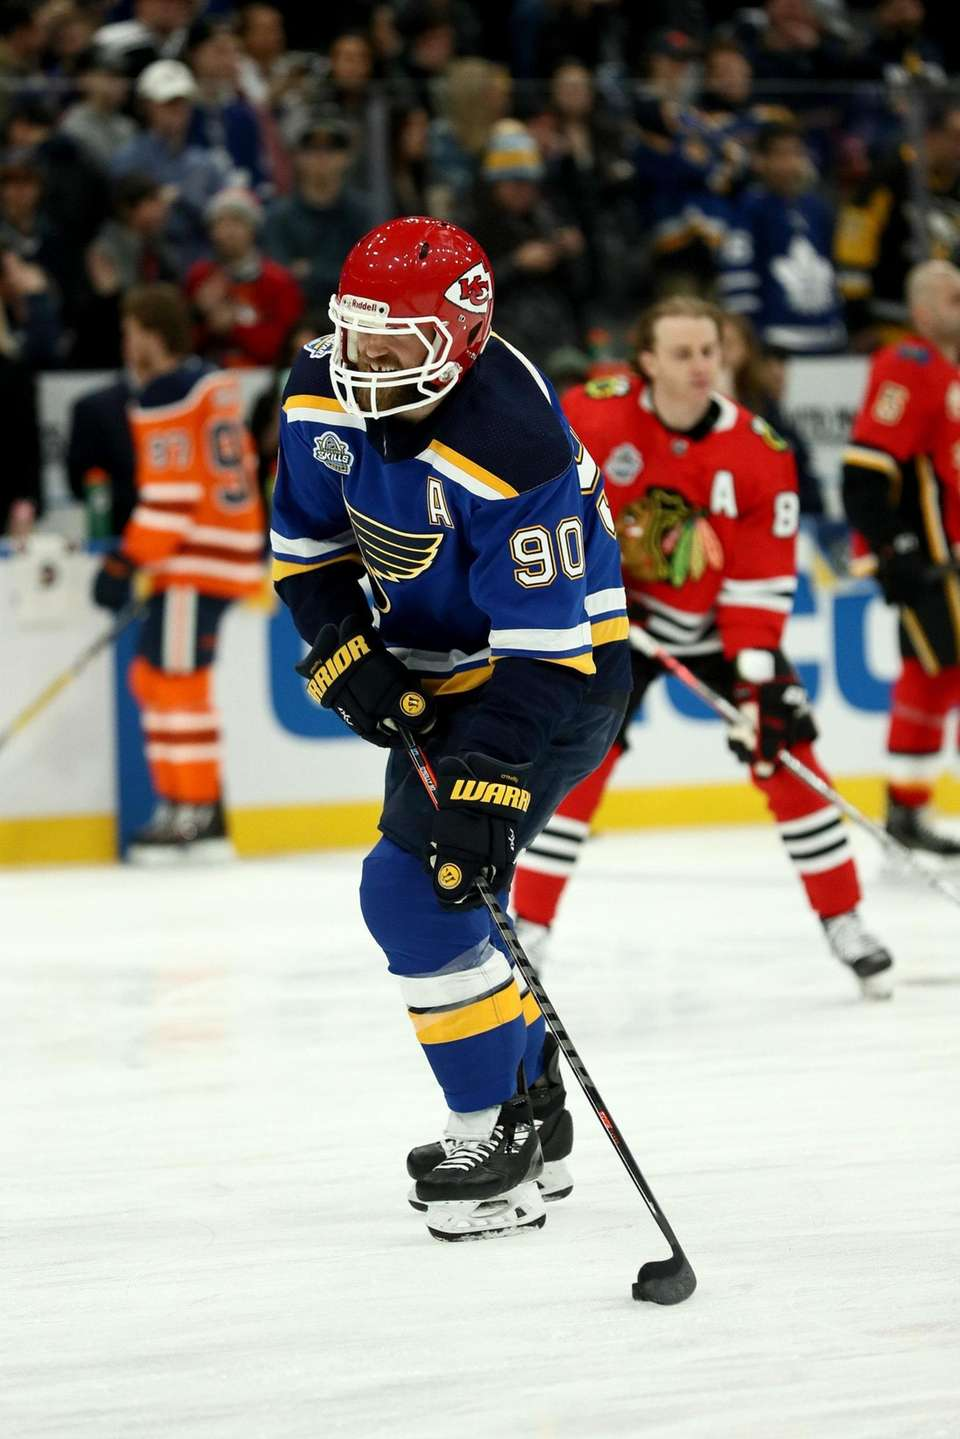 Ryan O'Reilly of the St. Louis Blues looks